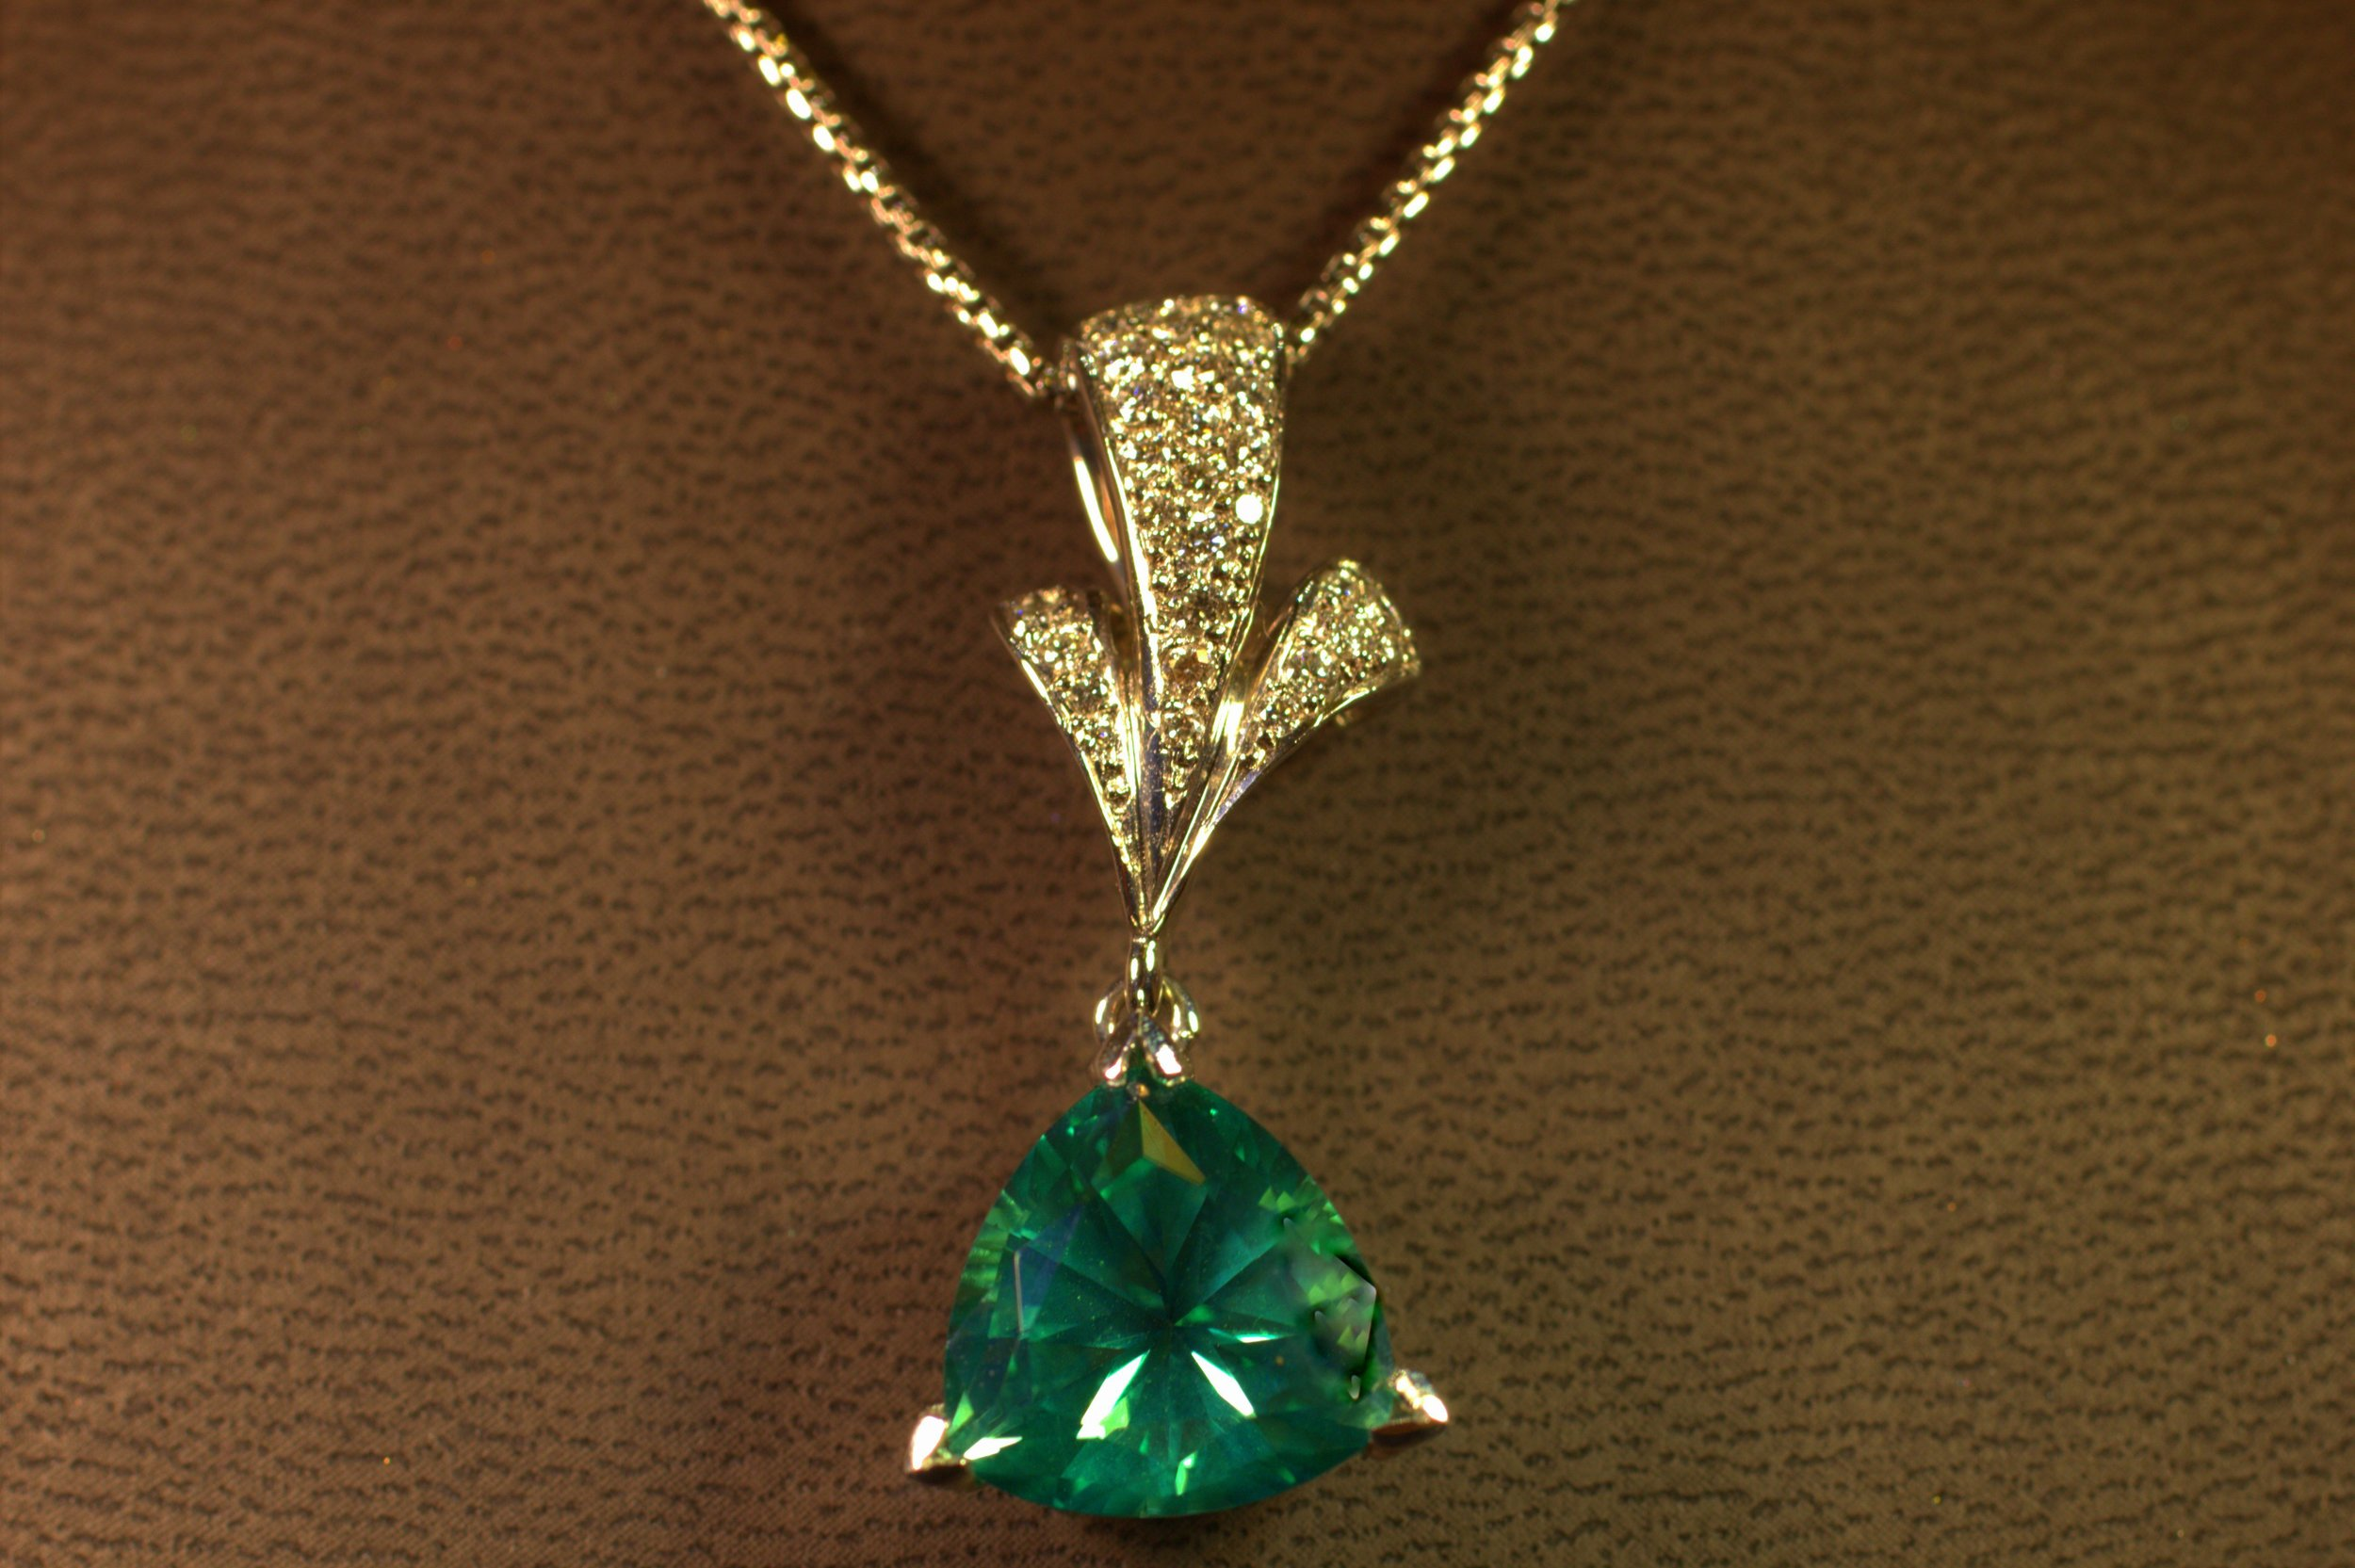 Custom seafoam green tourmaline custom designed by Mark Schneider beautiful light seafoam green pendant with diamond accent modern with a classic twist available at marlen jewelers in rocky river minutes from cleveland.jpg